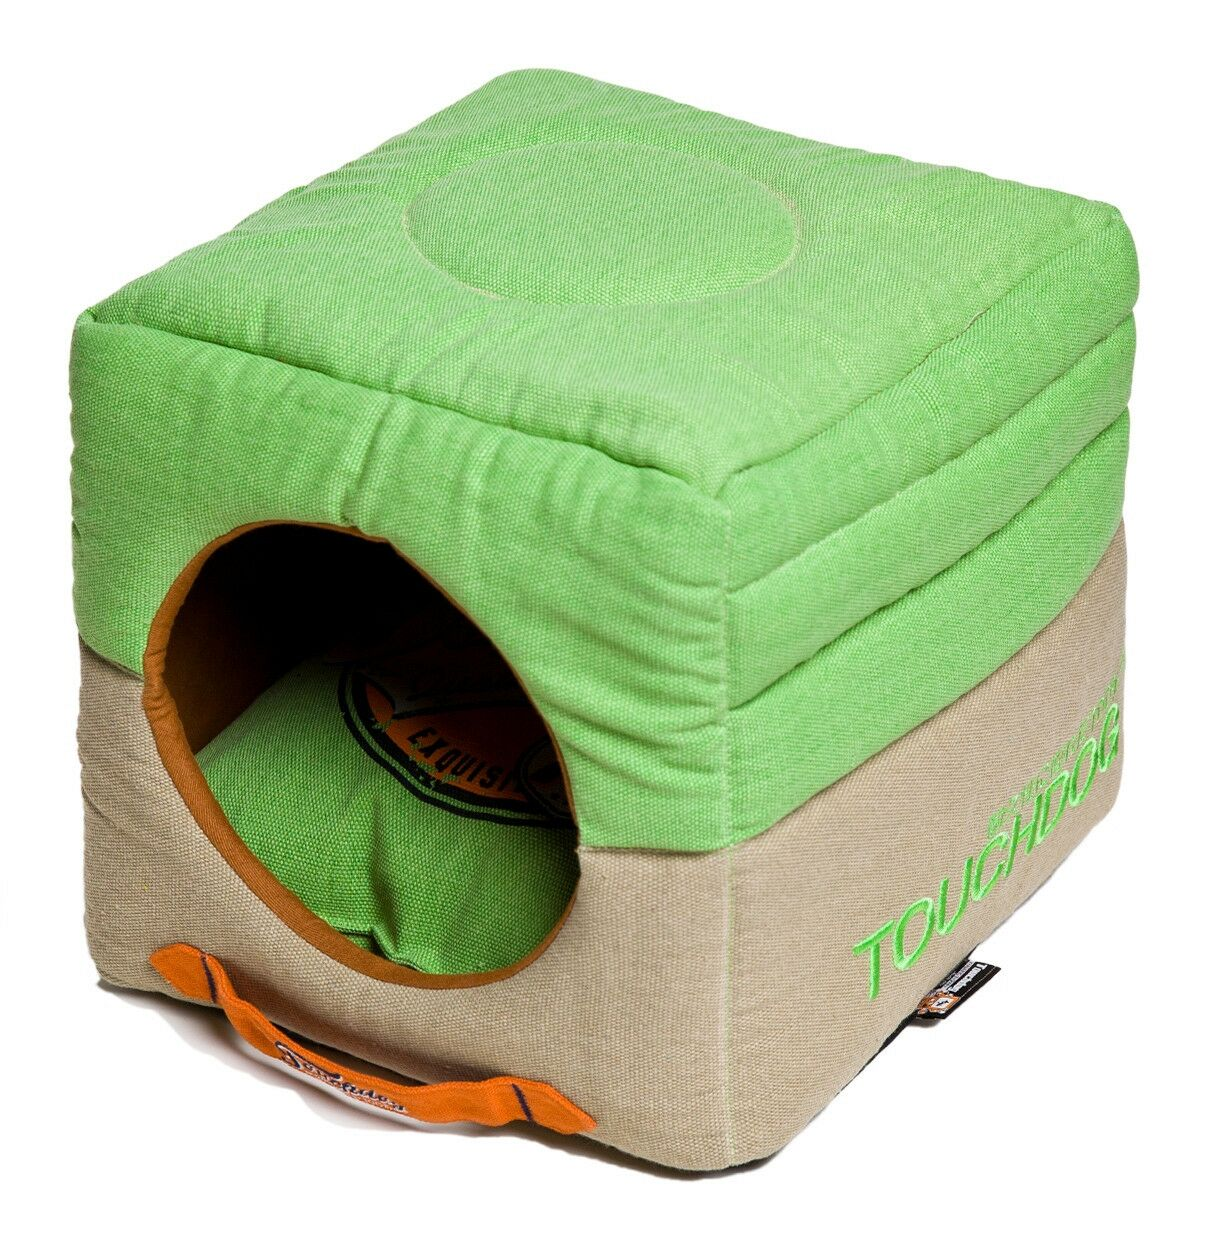 Convertible and Reversible Vintage Printed Squared 2-in-1 Collapsible Dog House Bed Color: Green